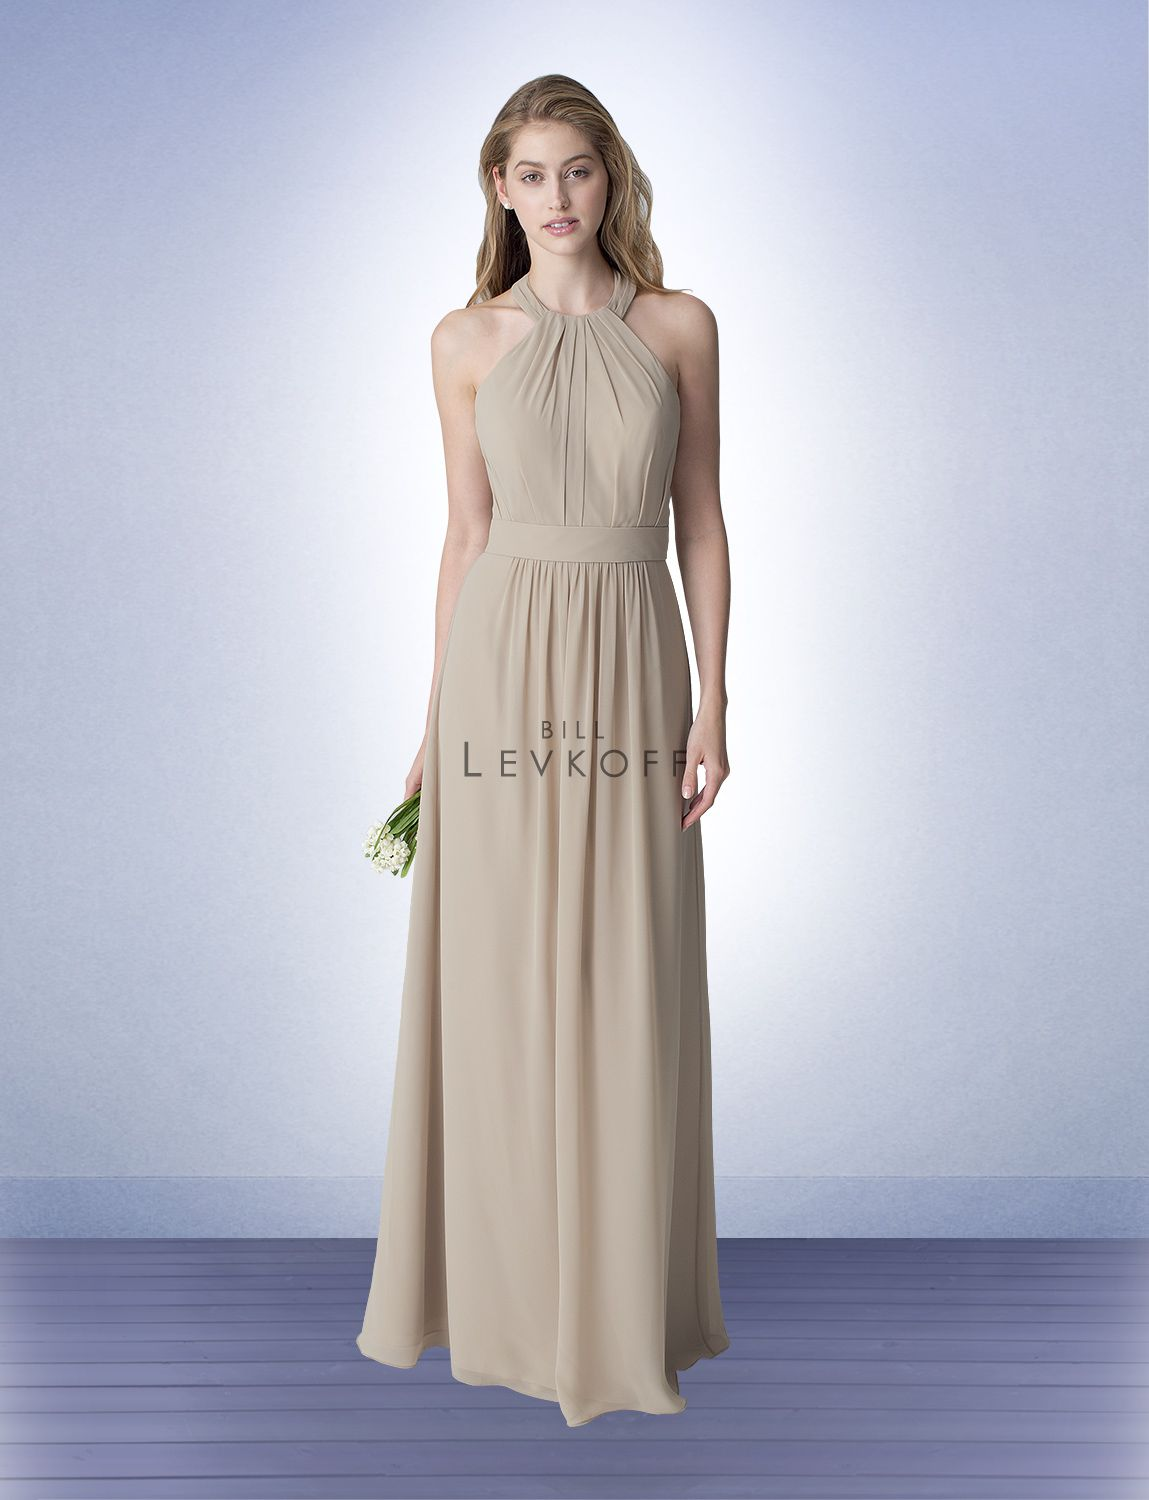 Bridesmaid dress style 1272 bridesmaid dresses by bill levkoff bridesmaid dress style 1272 bridesmaid dresses by bill levkoff available at http ombrellifo Image collections